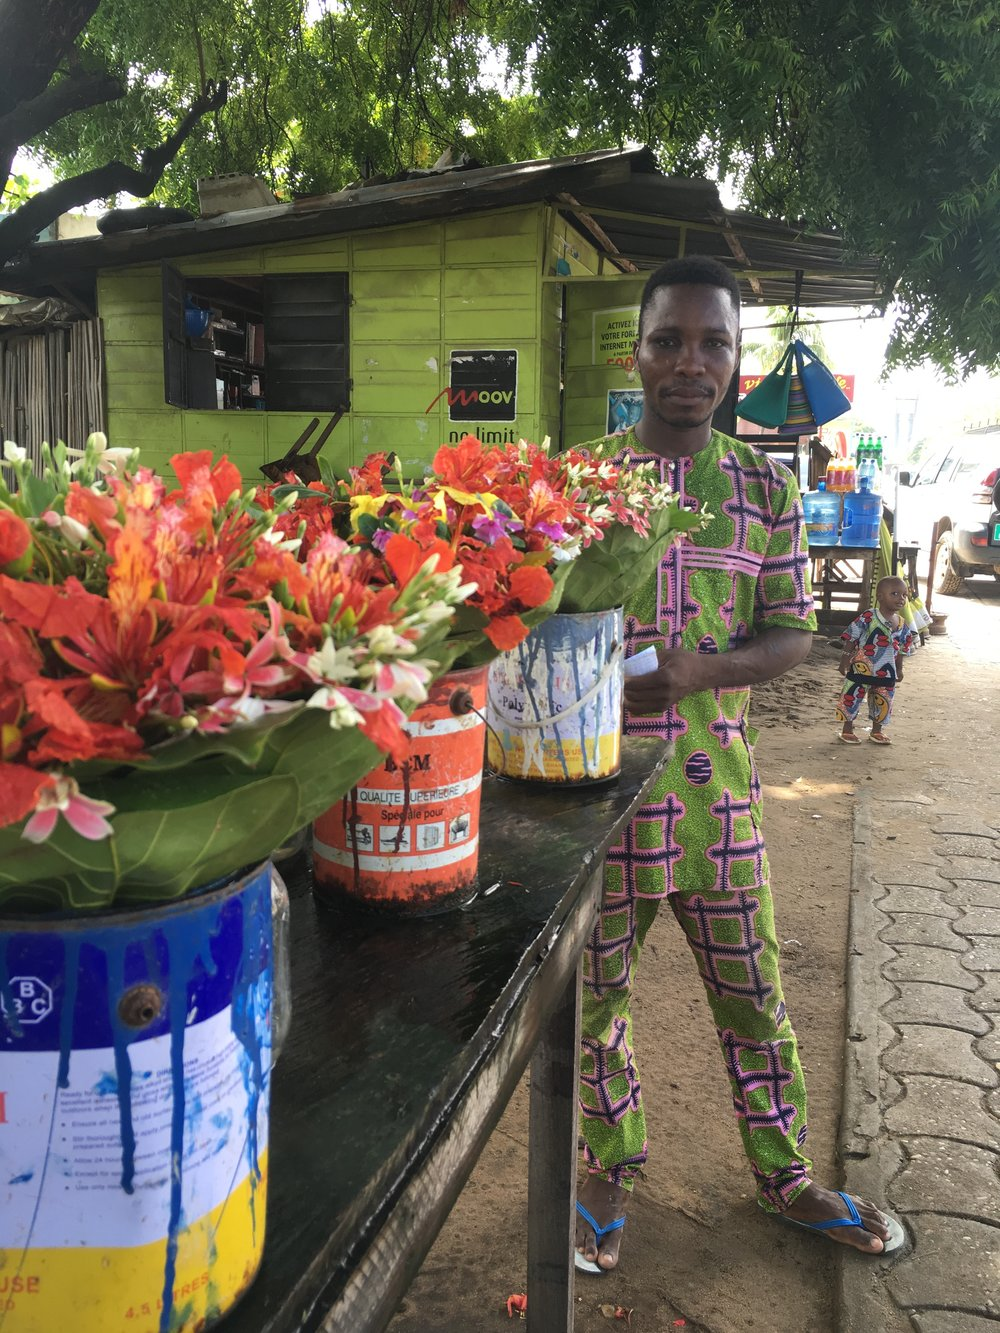 Gorgeous flowers for sale in Haie Vive, Cotonou.